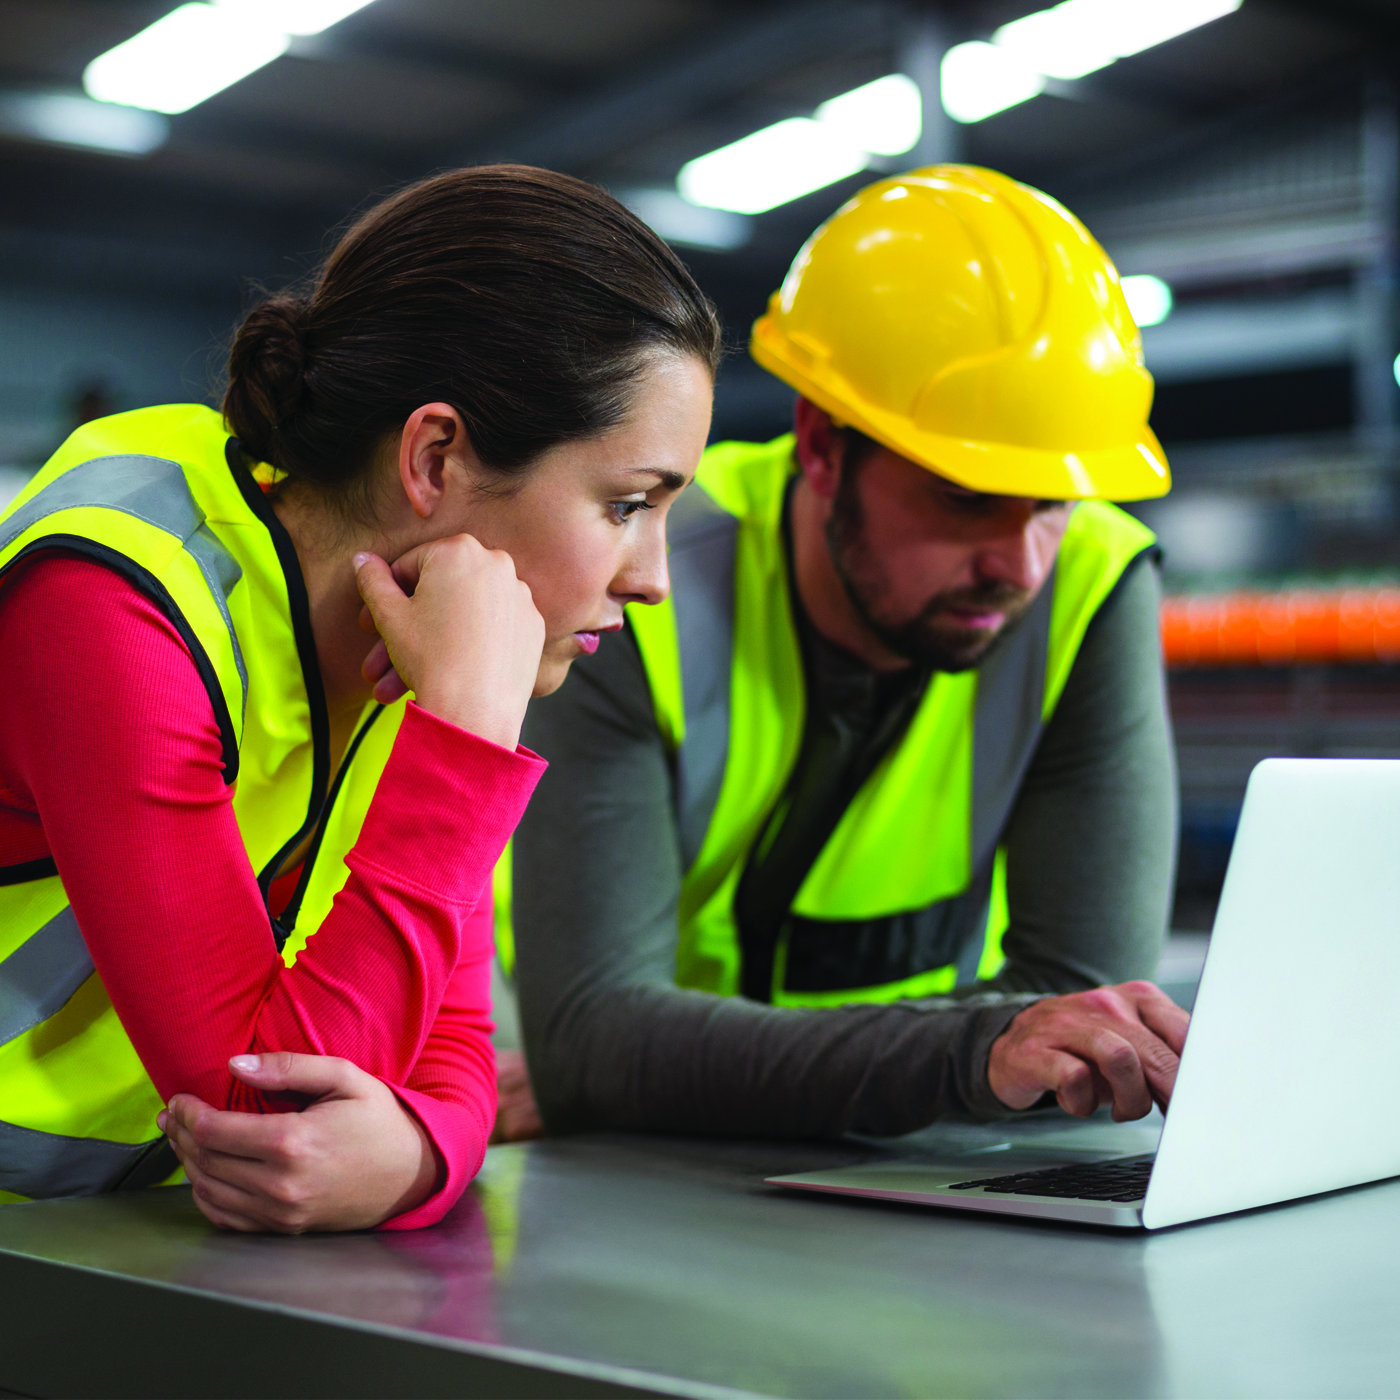 The 7 Ways Preventive Maintenance Software Reduces Downtime